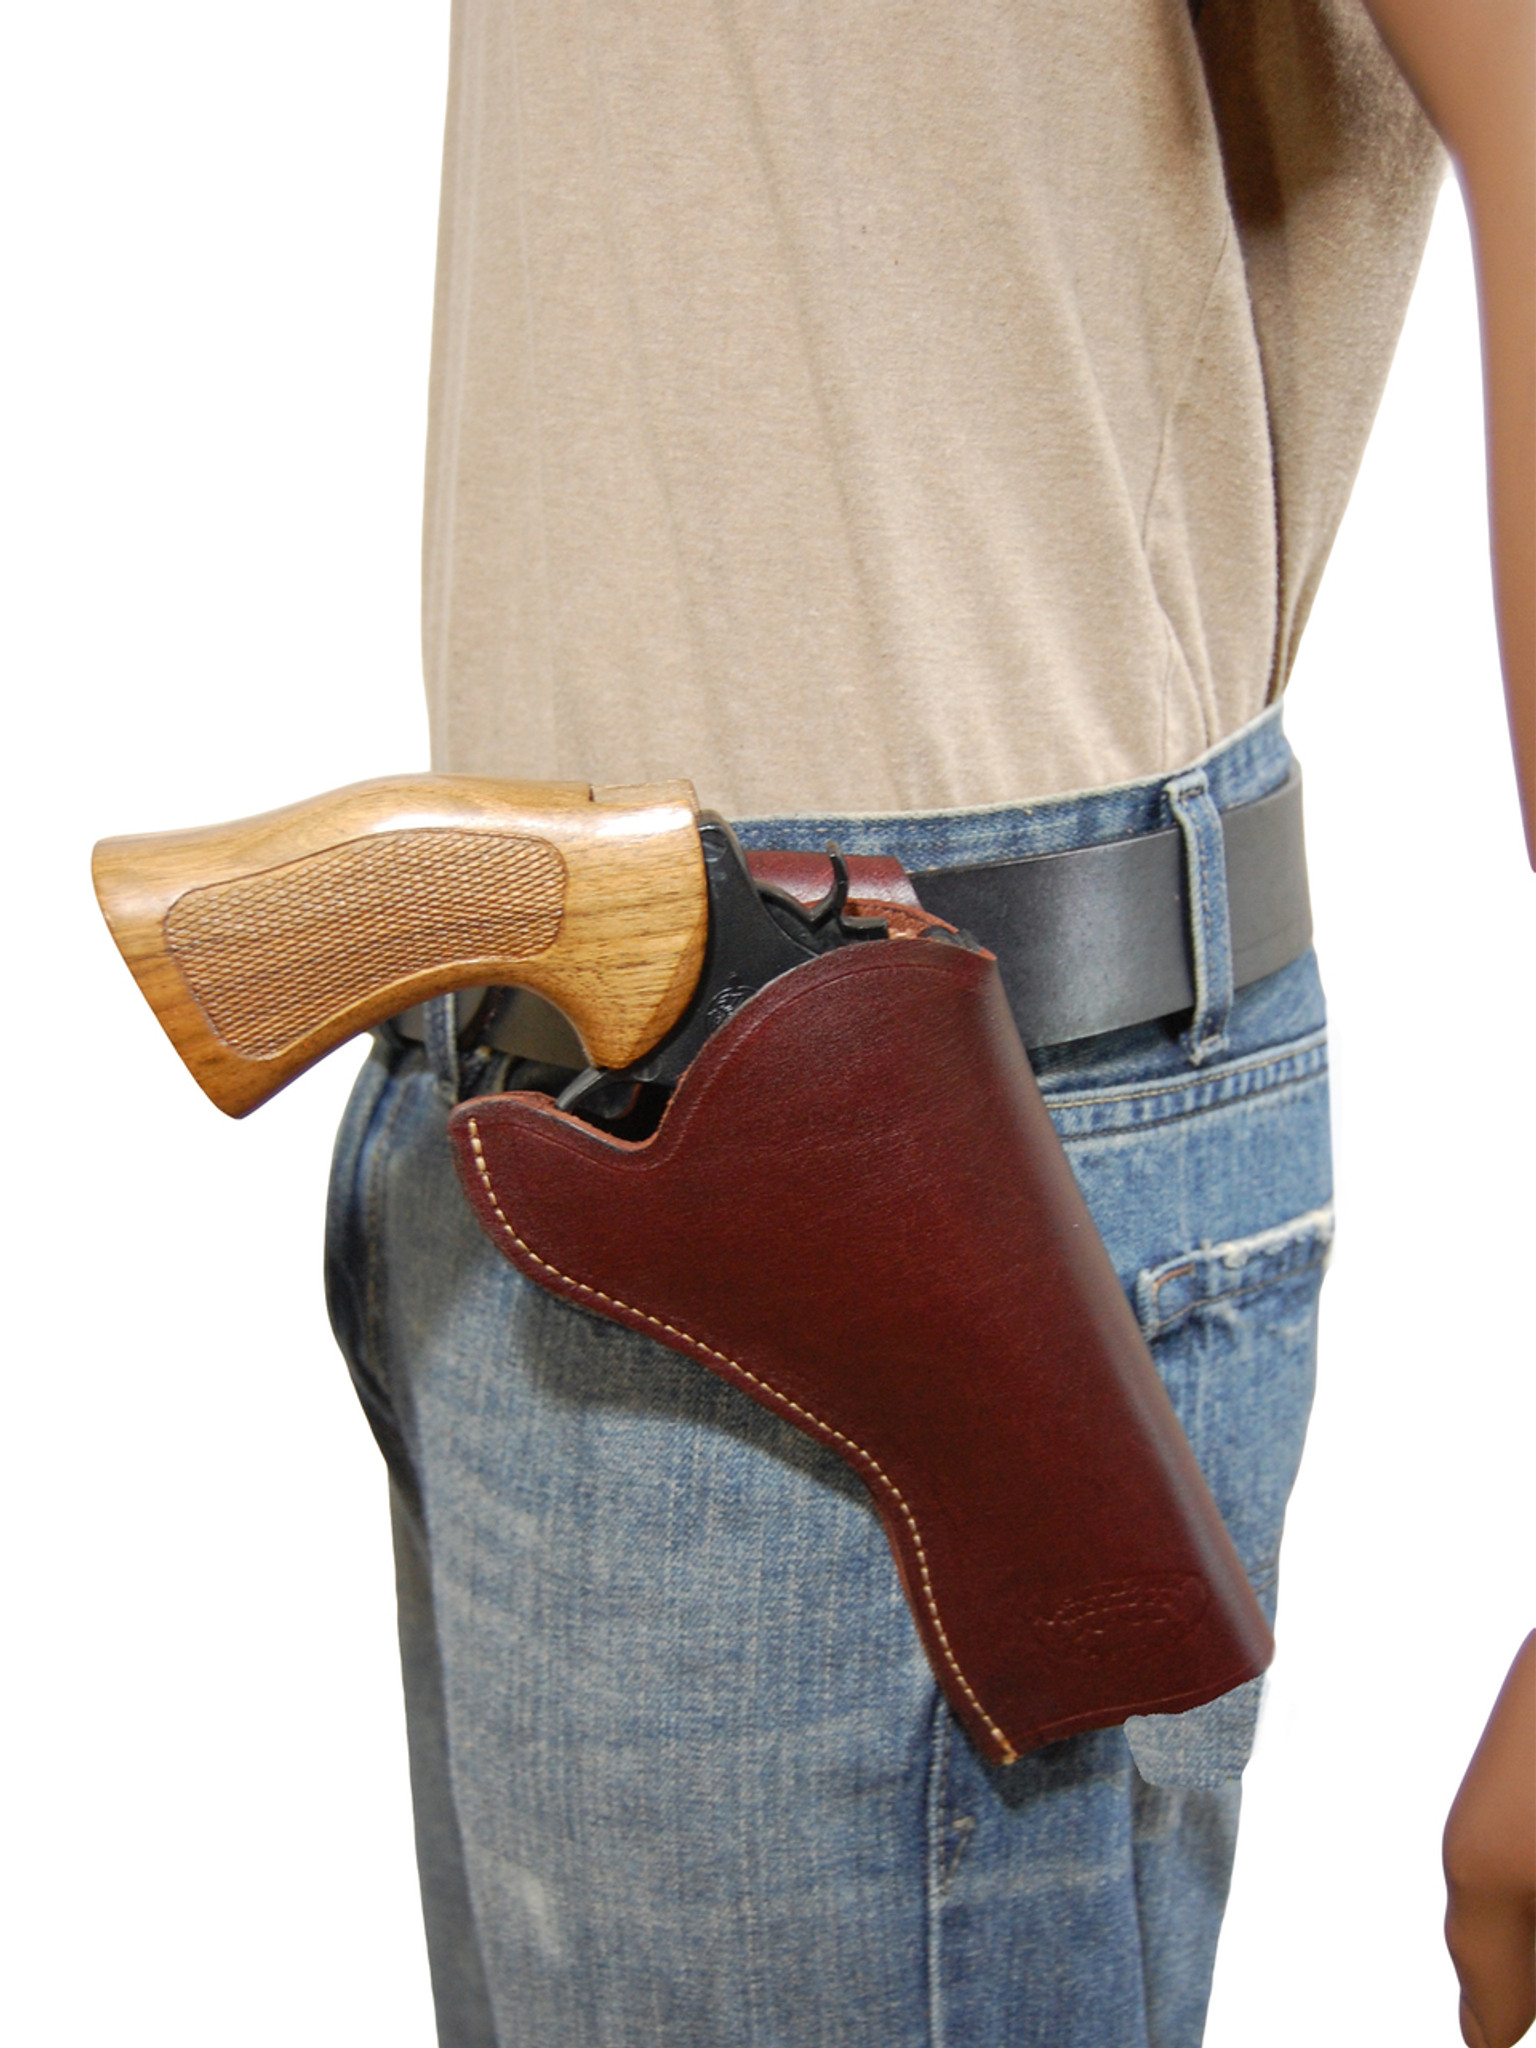 Burgundy Leather Cross Draw Holster for 4-5